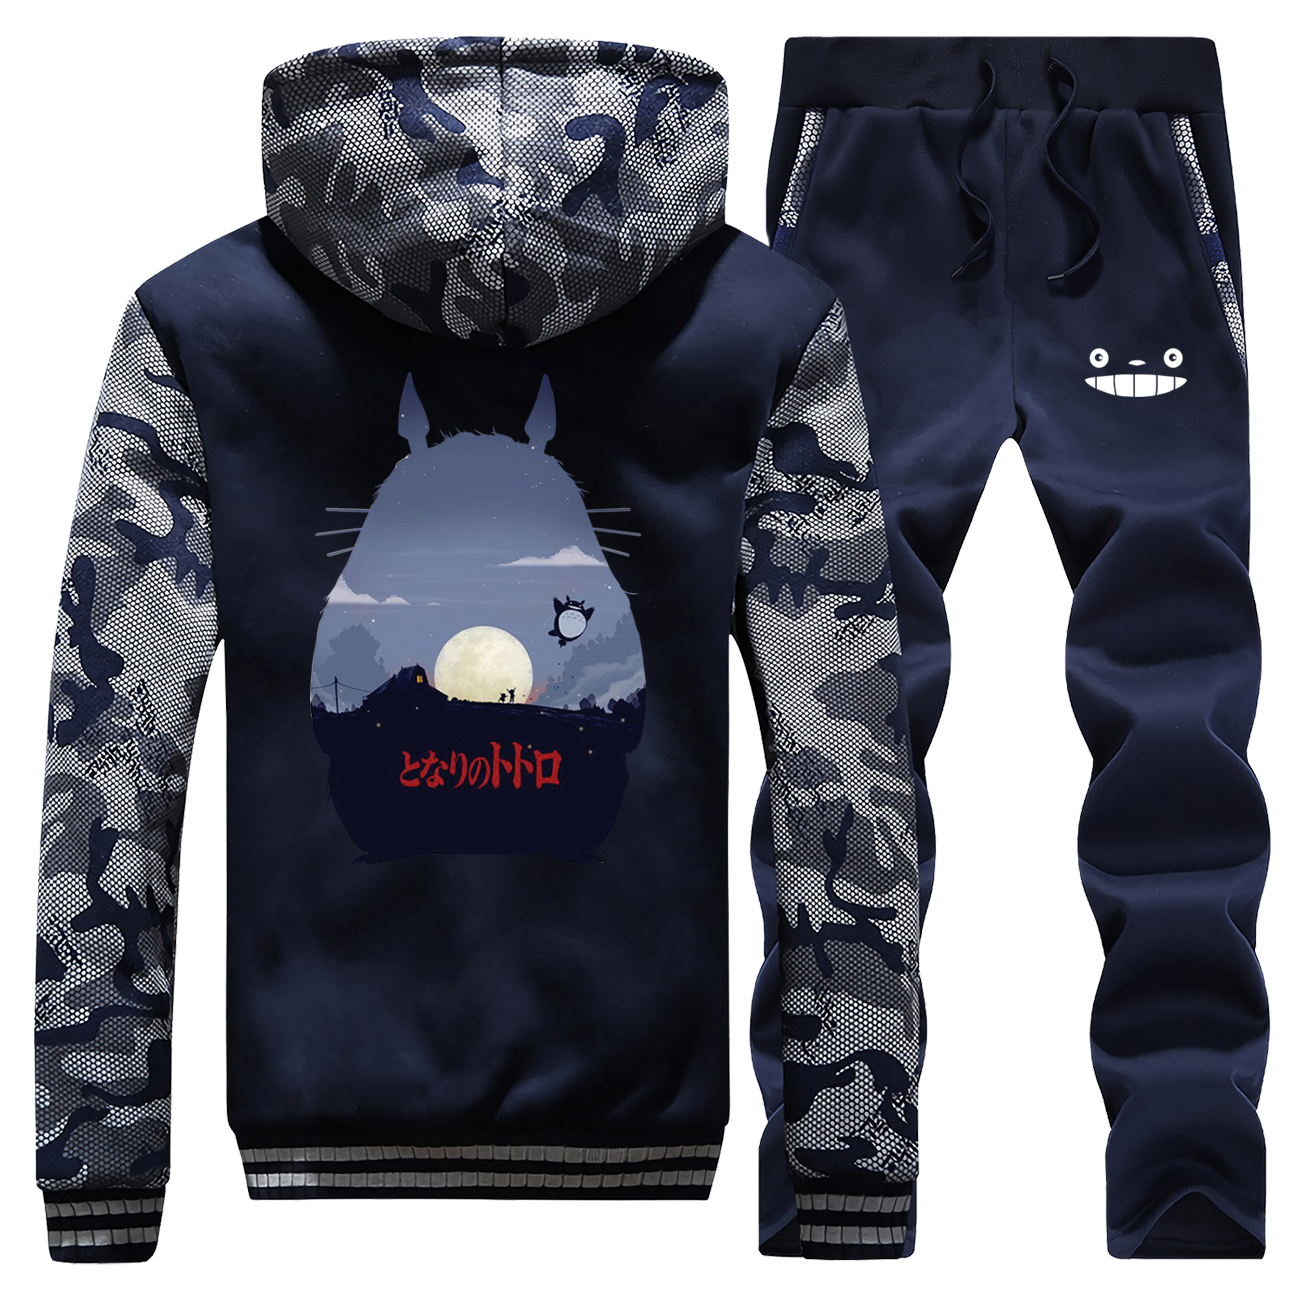 Hot Sale 2019 Winter Cartoon Hoody Japan Anime Totoro Men Raglan Fashion Camouflage Coat Thick Suit Sportswear+Pants 2 Piece Set